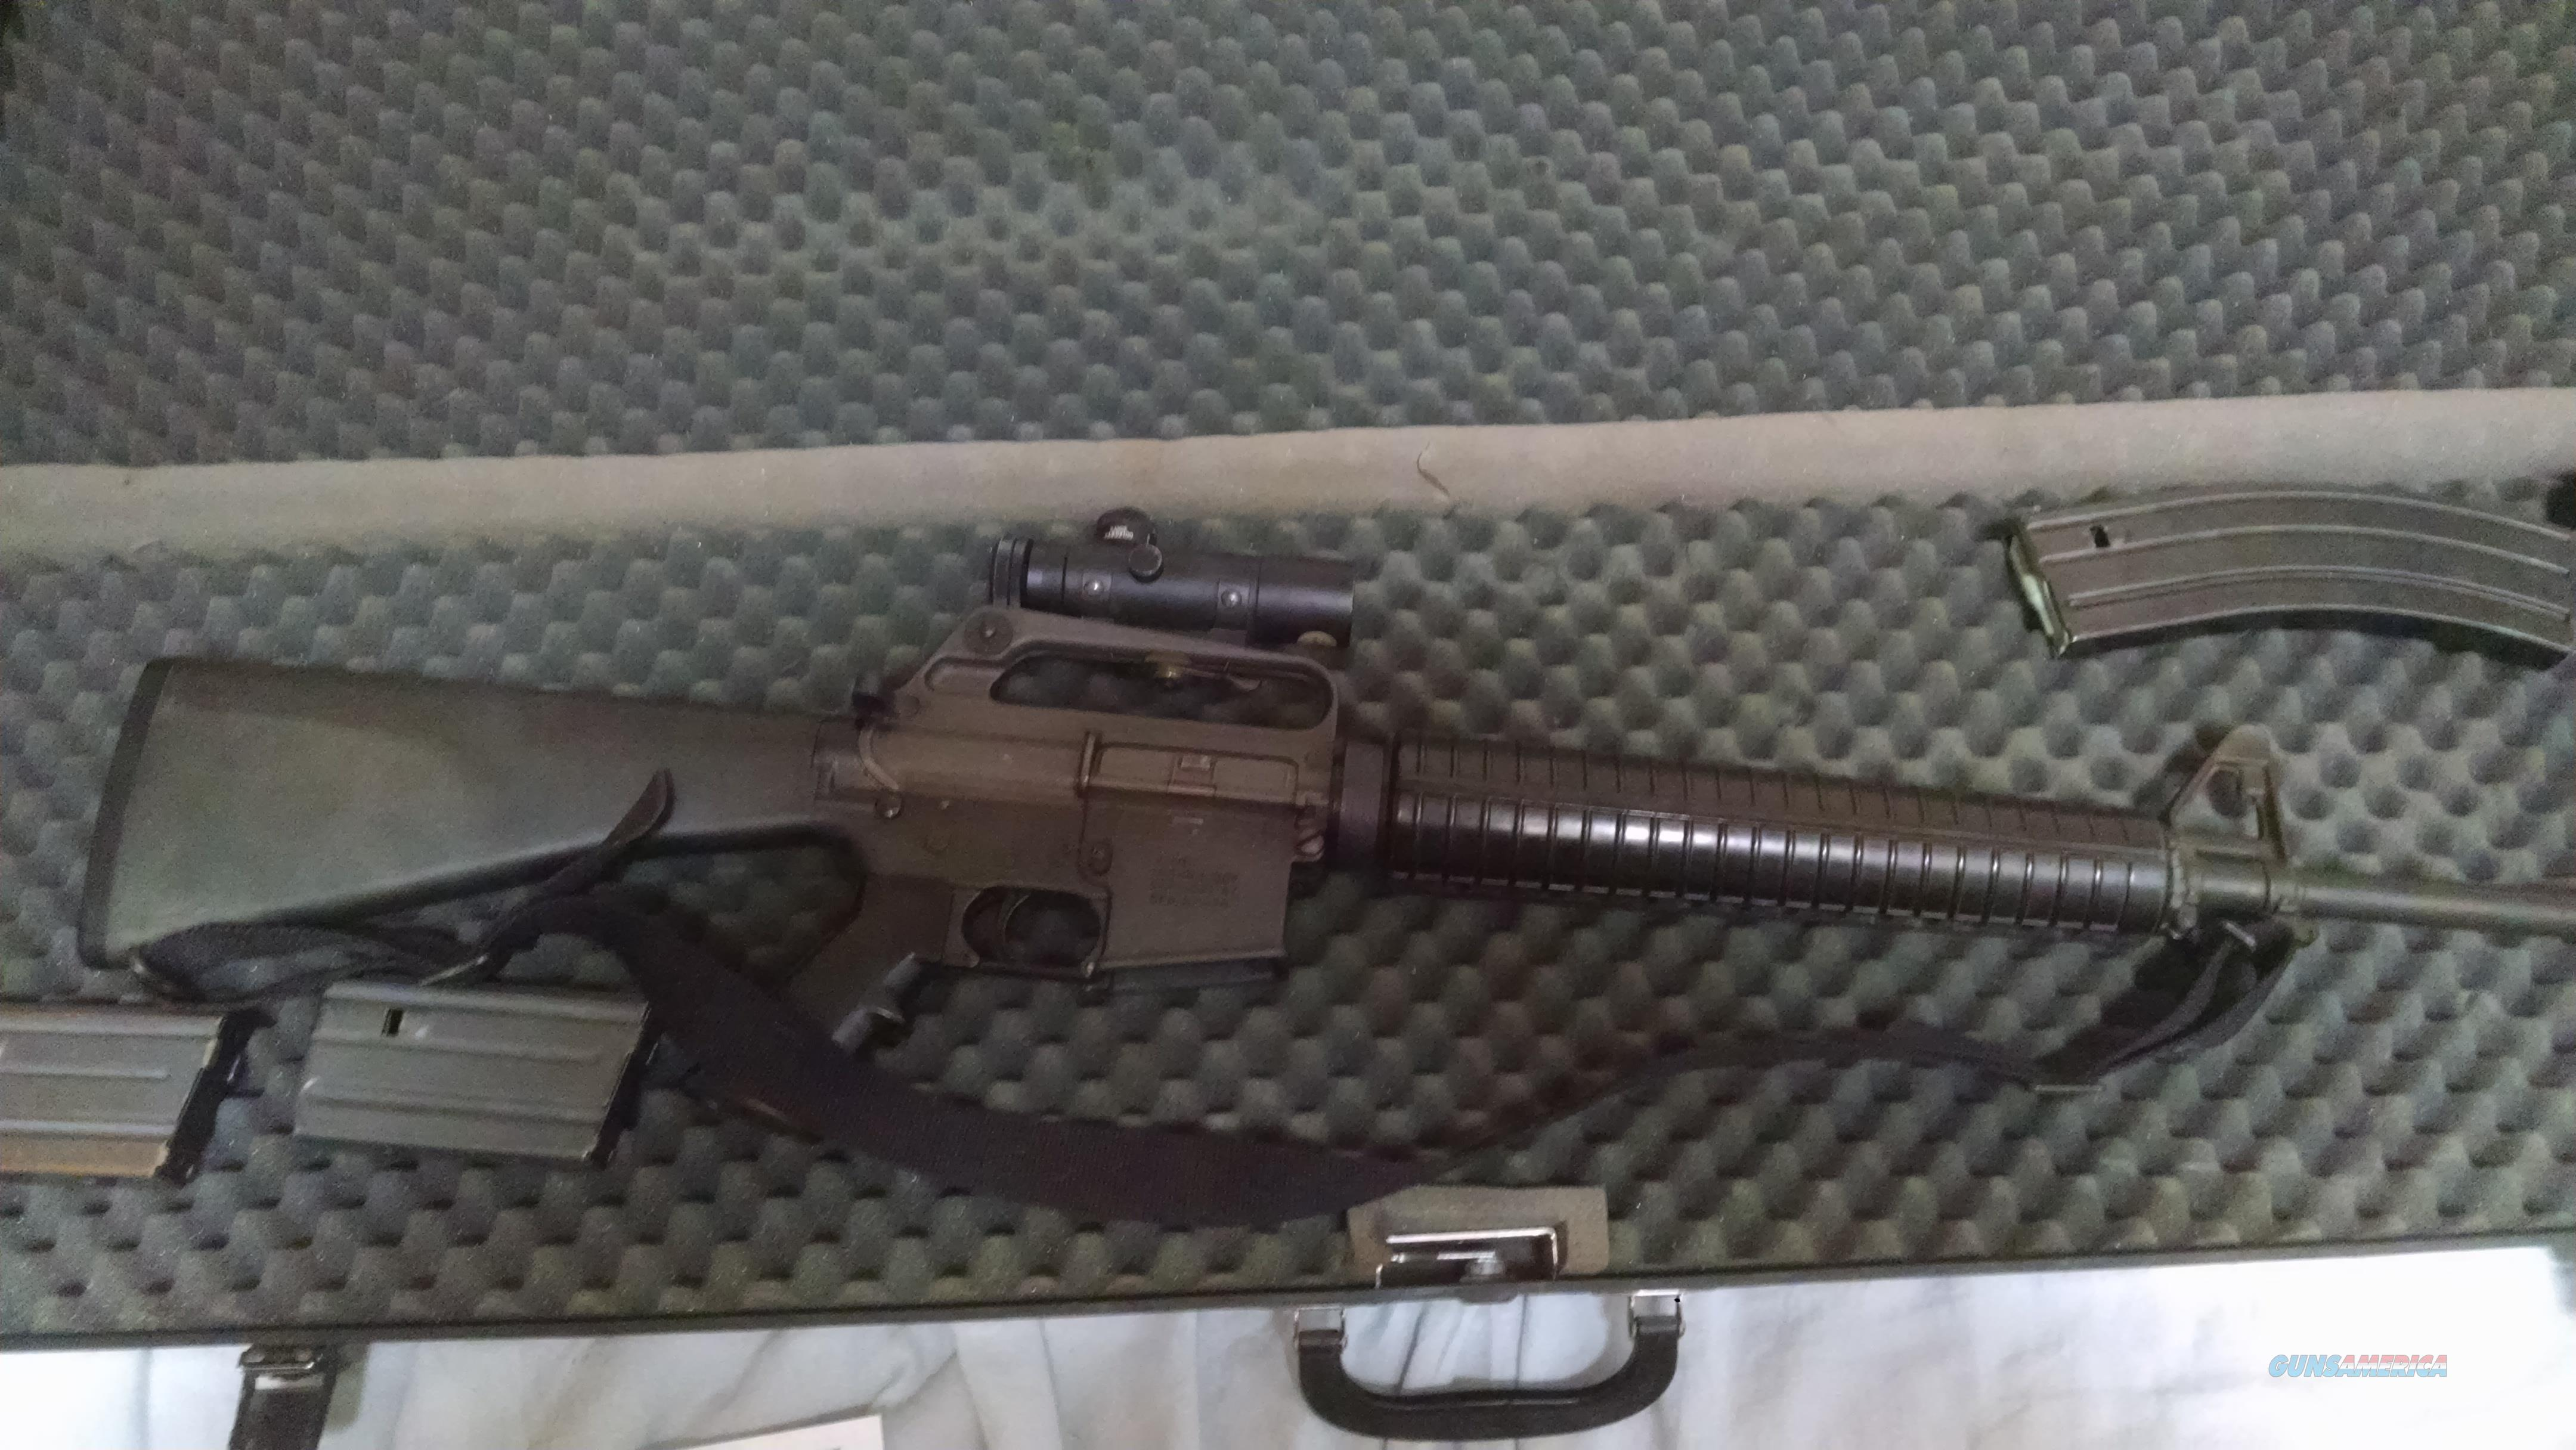 Colt AR15 A2 Sporter II Full Auto  Guns > Rifles > Colt Military/Tactical Rifles